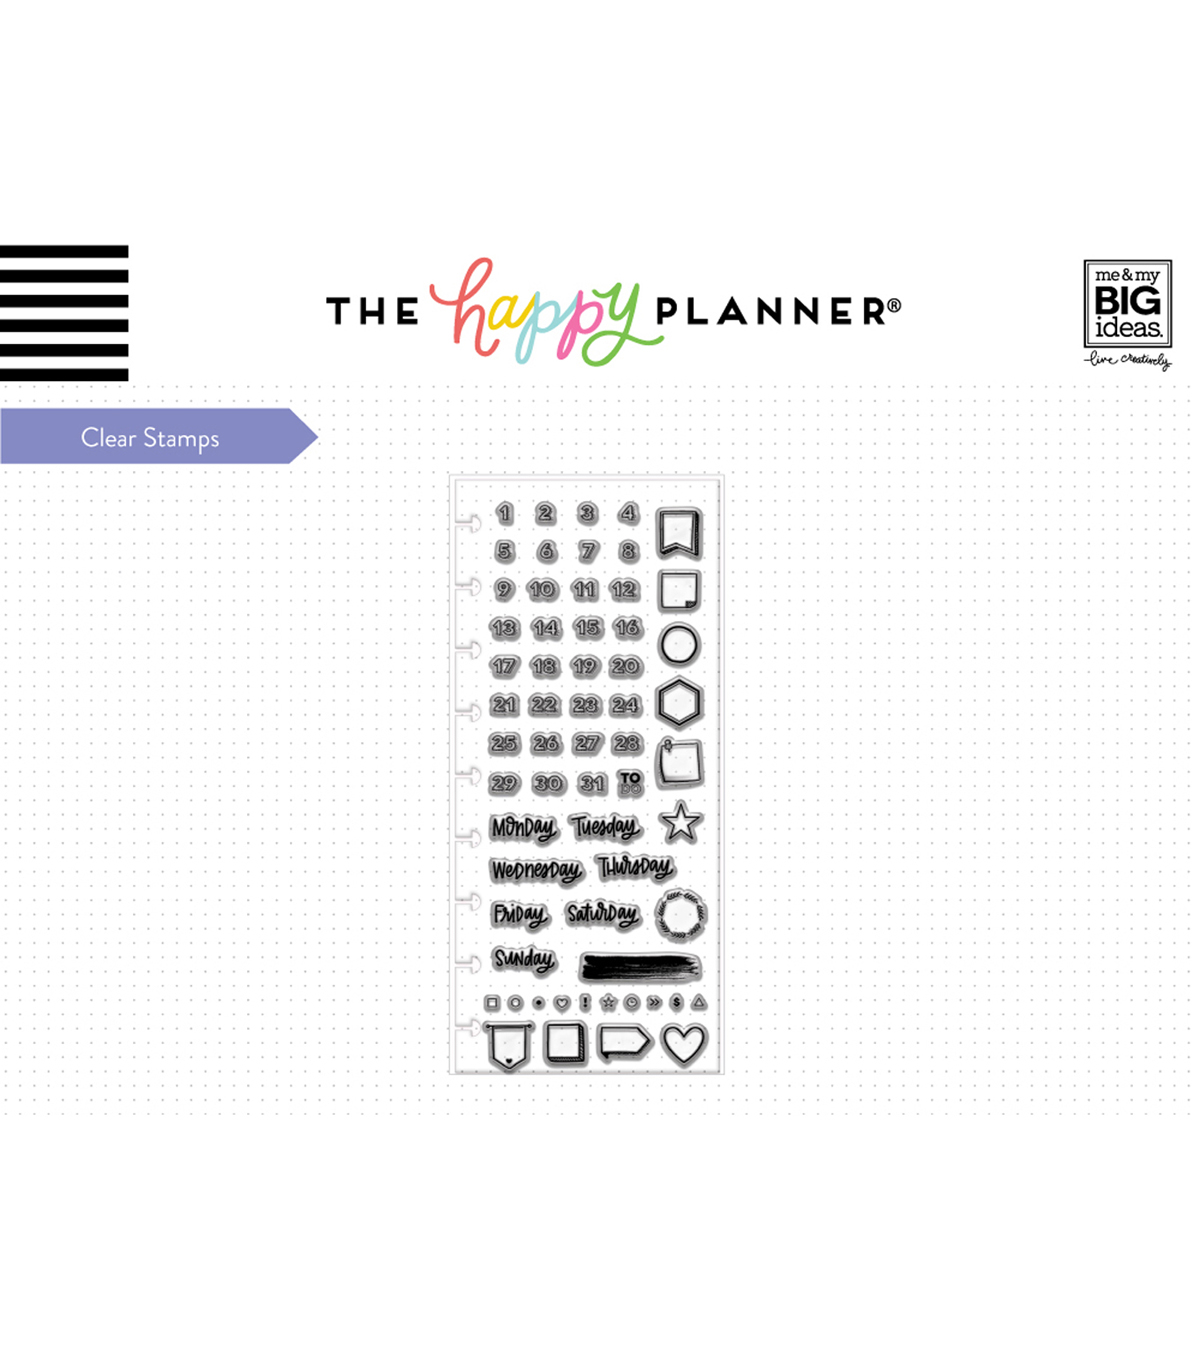 The Happy Planner 61 pk Clear Stamps-Days & Numbers